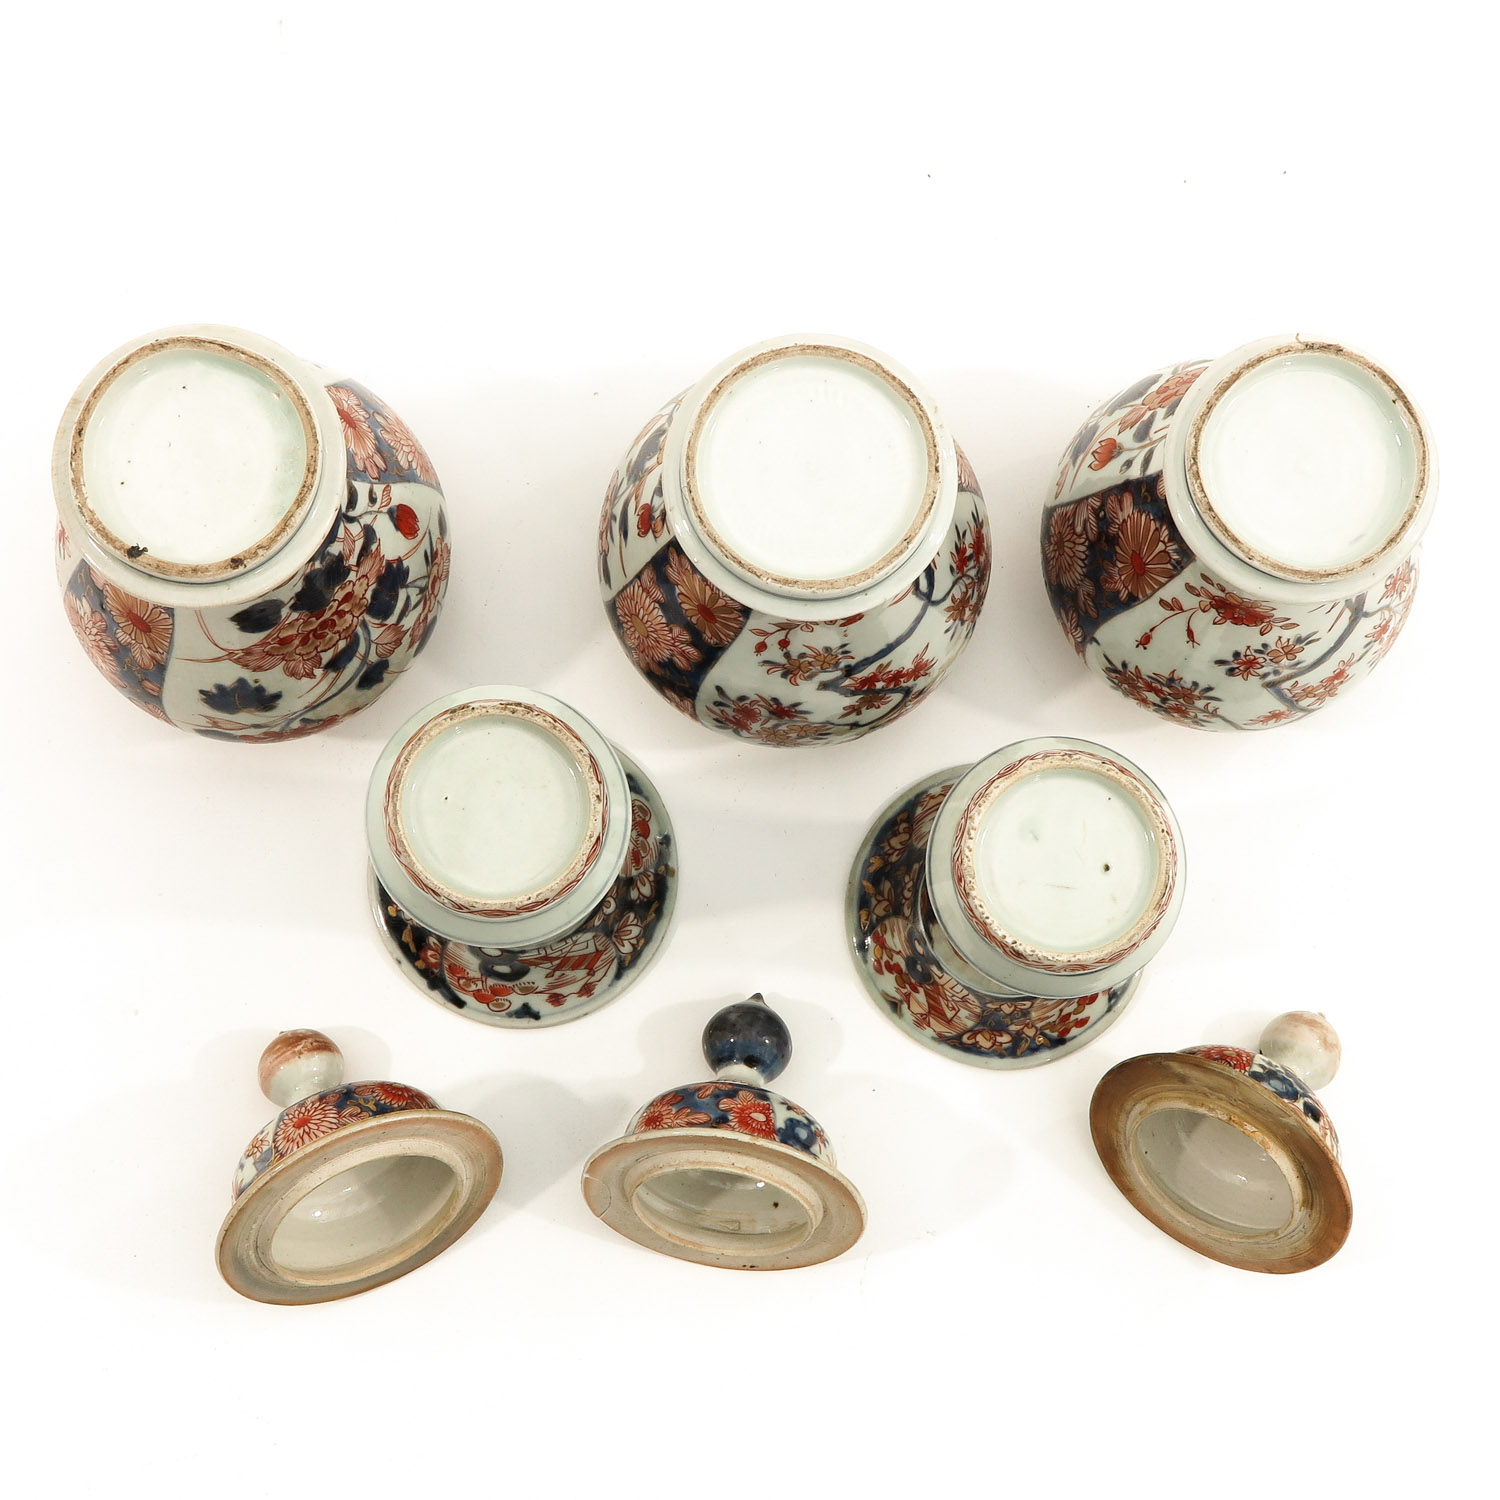 A 5 Piece Imari Garniture Set - Image 6 of 9